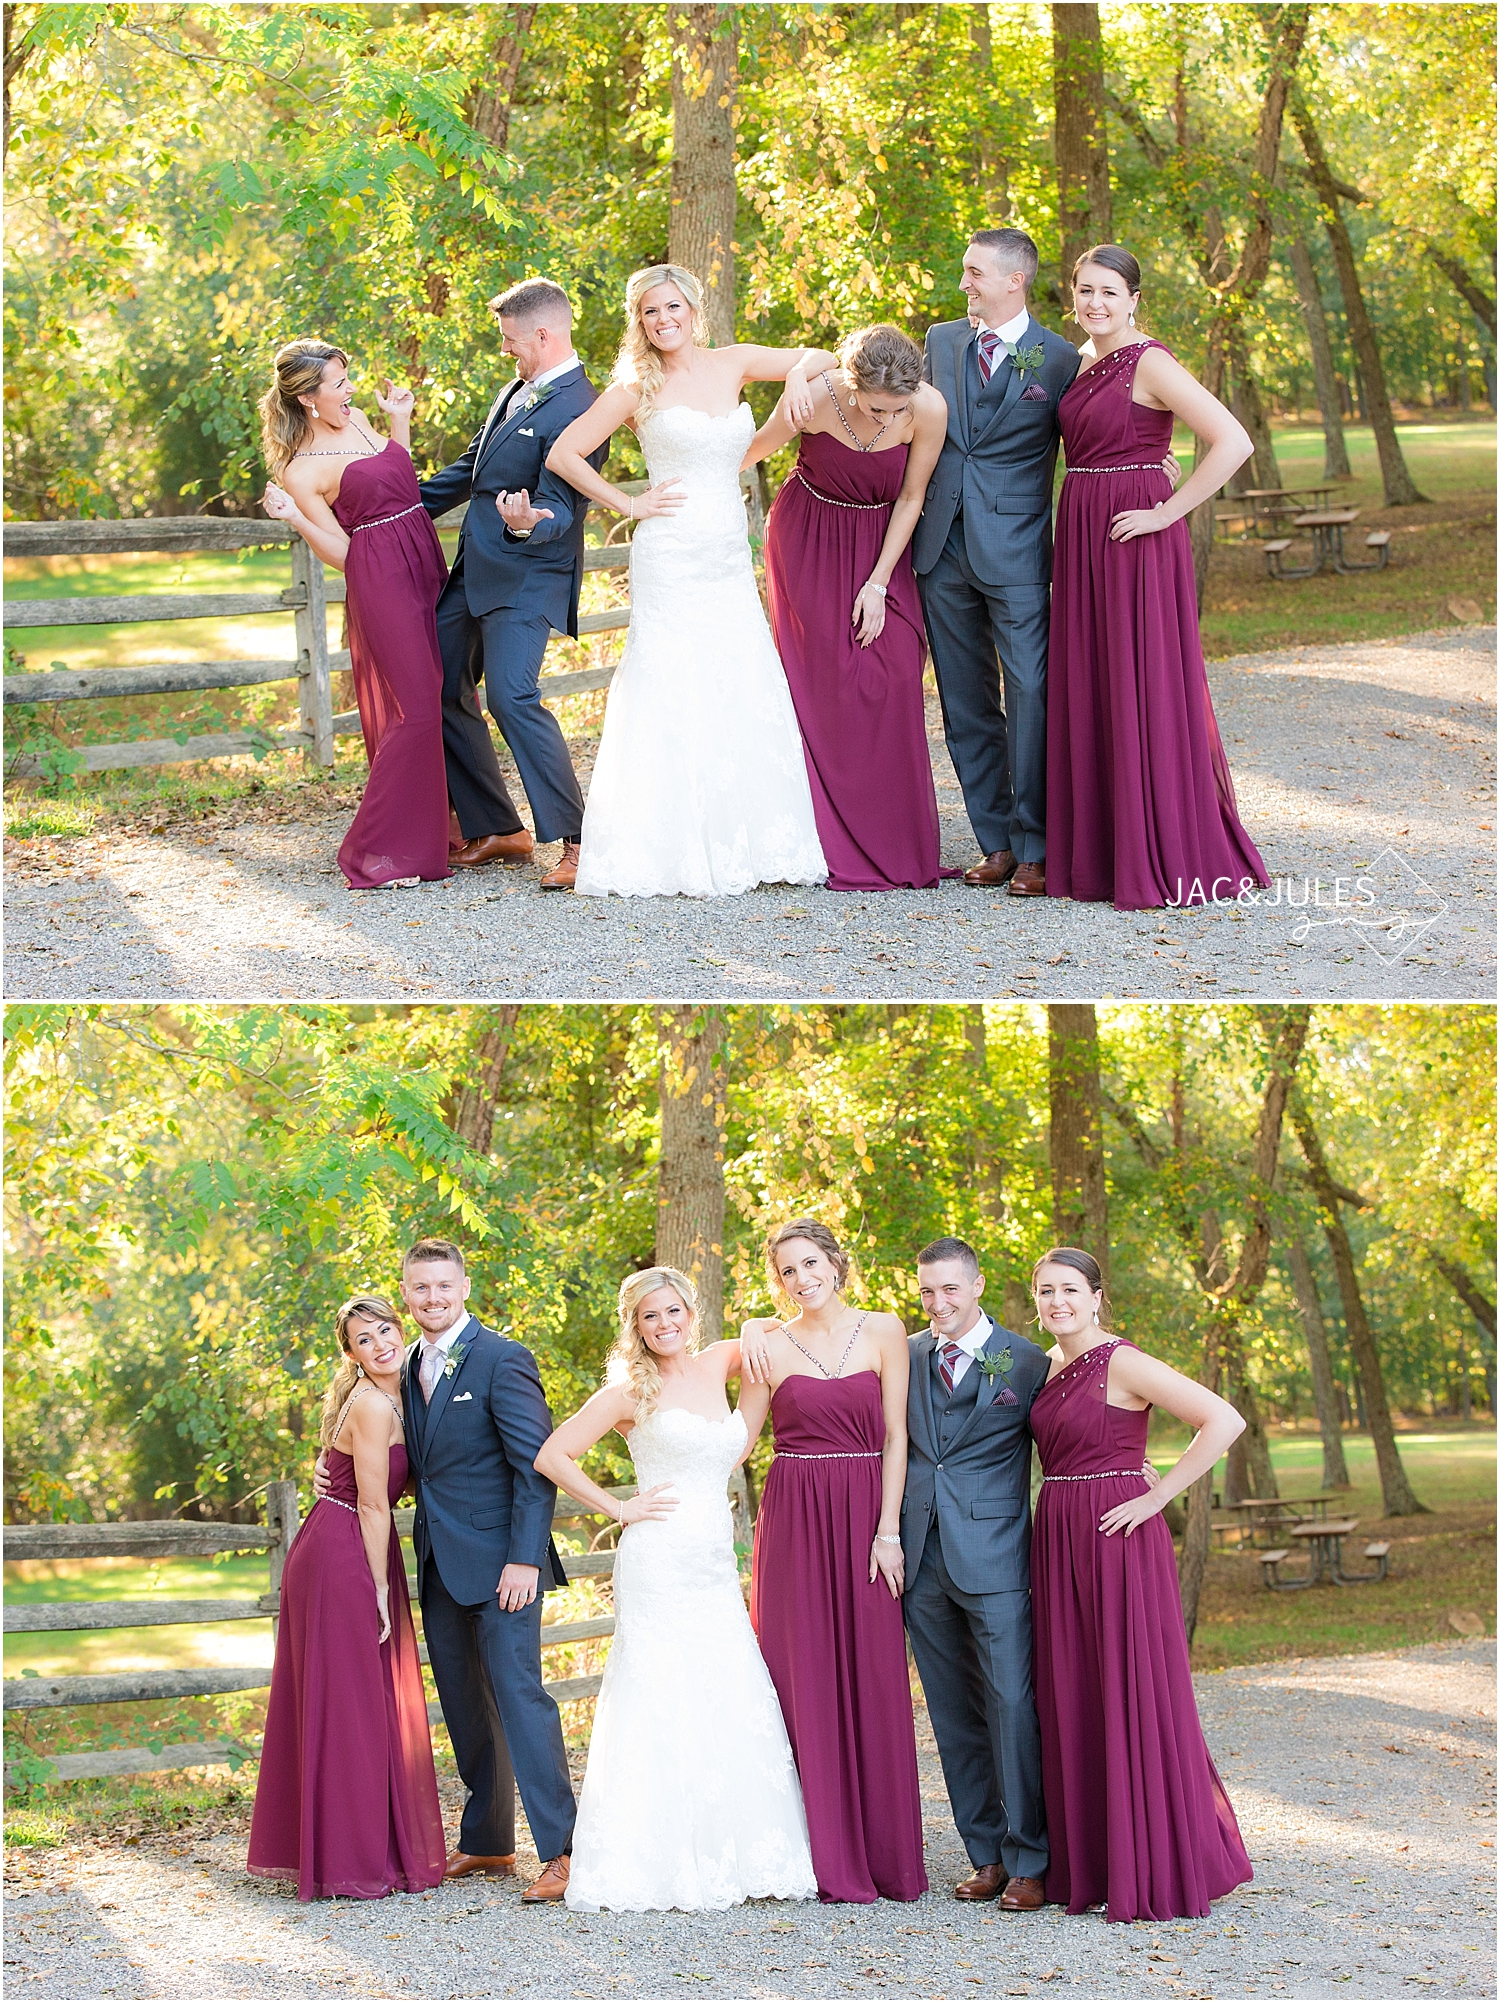 jacnjules photographs wedding at Allaire State Park, NJ